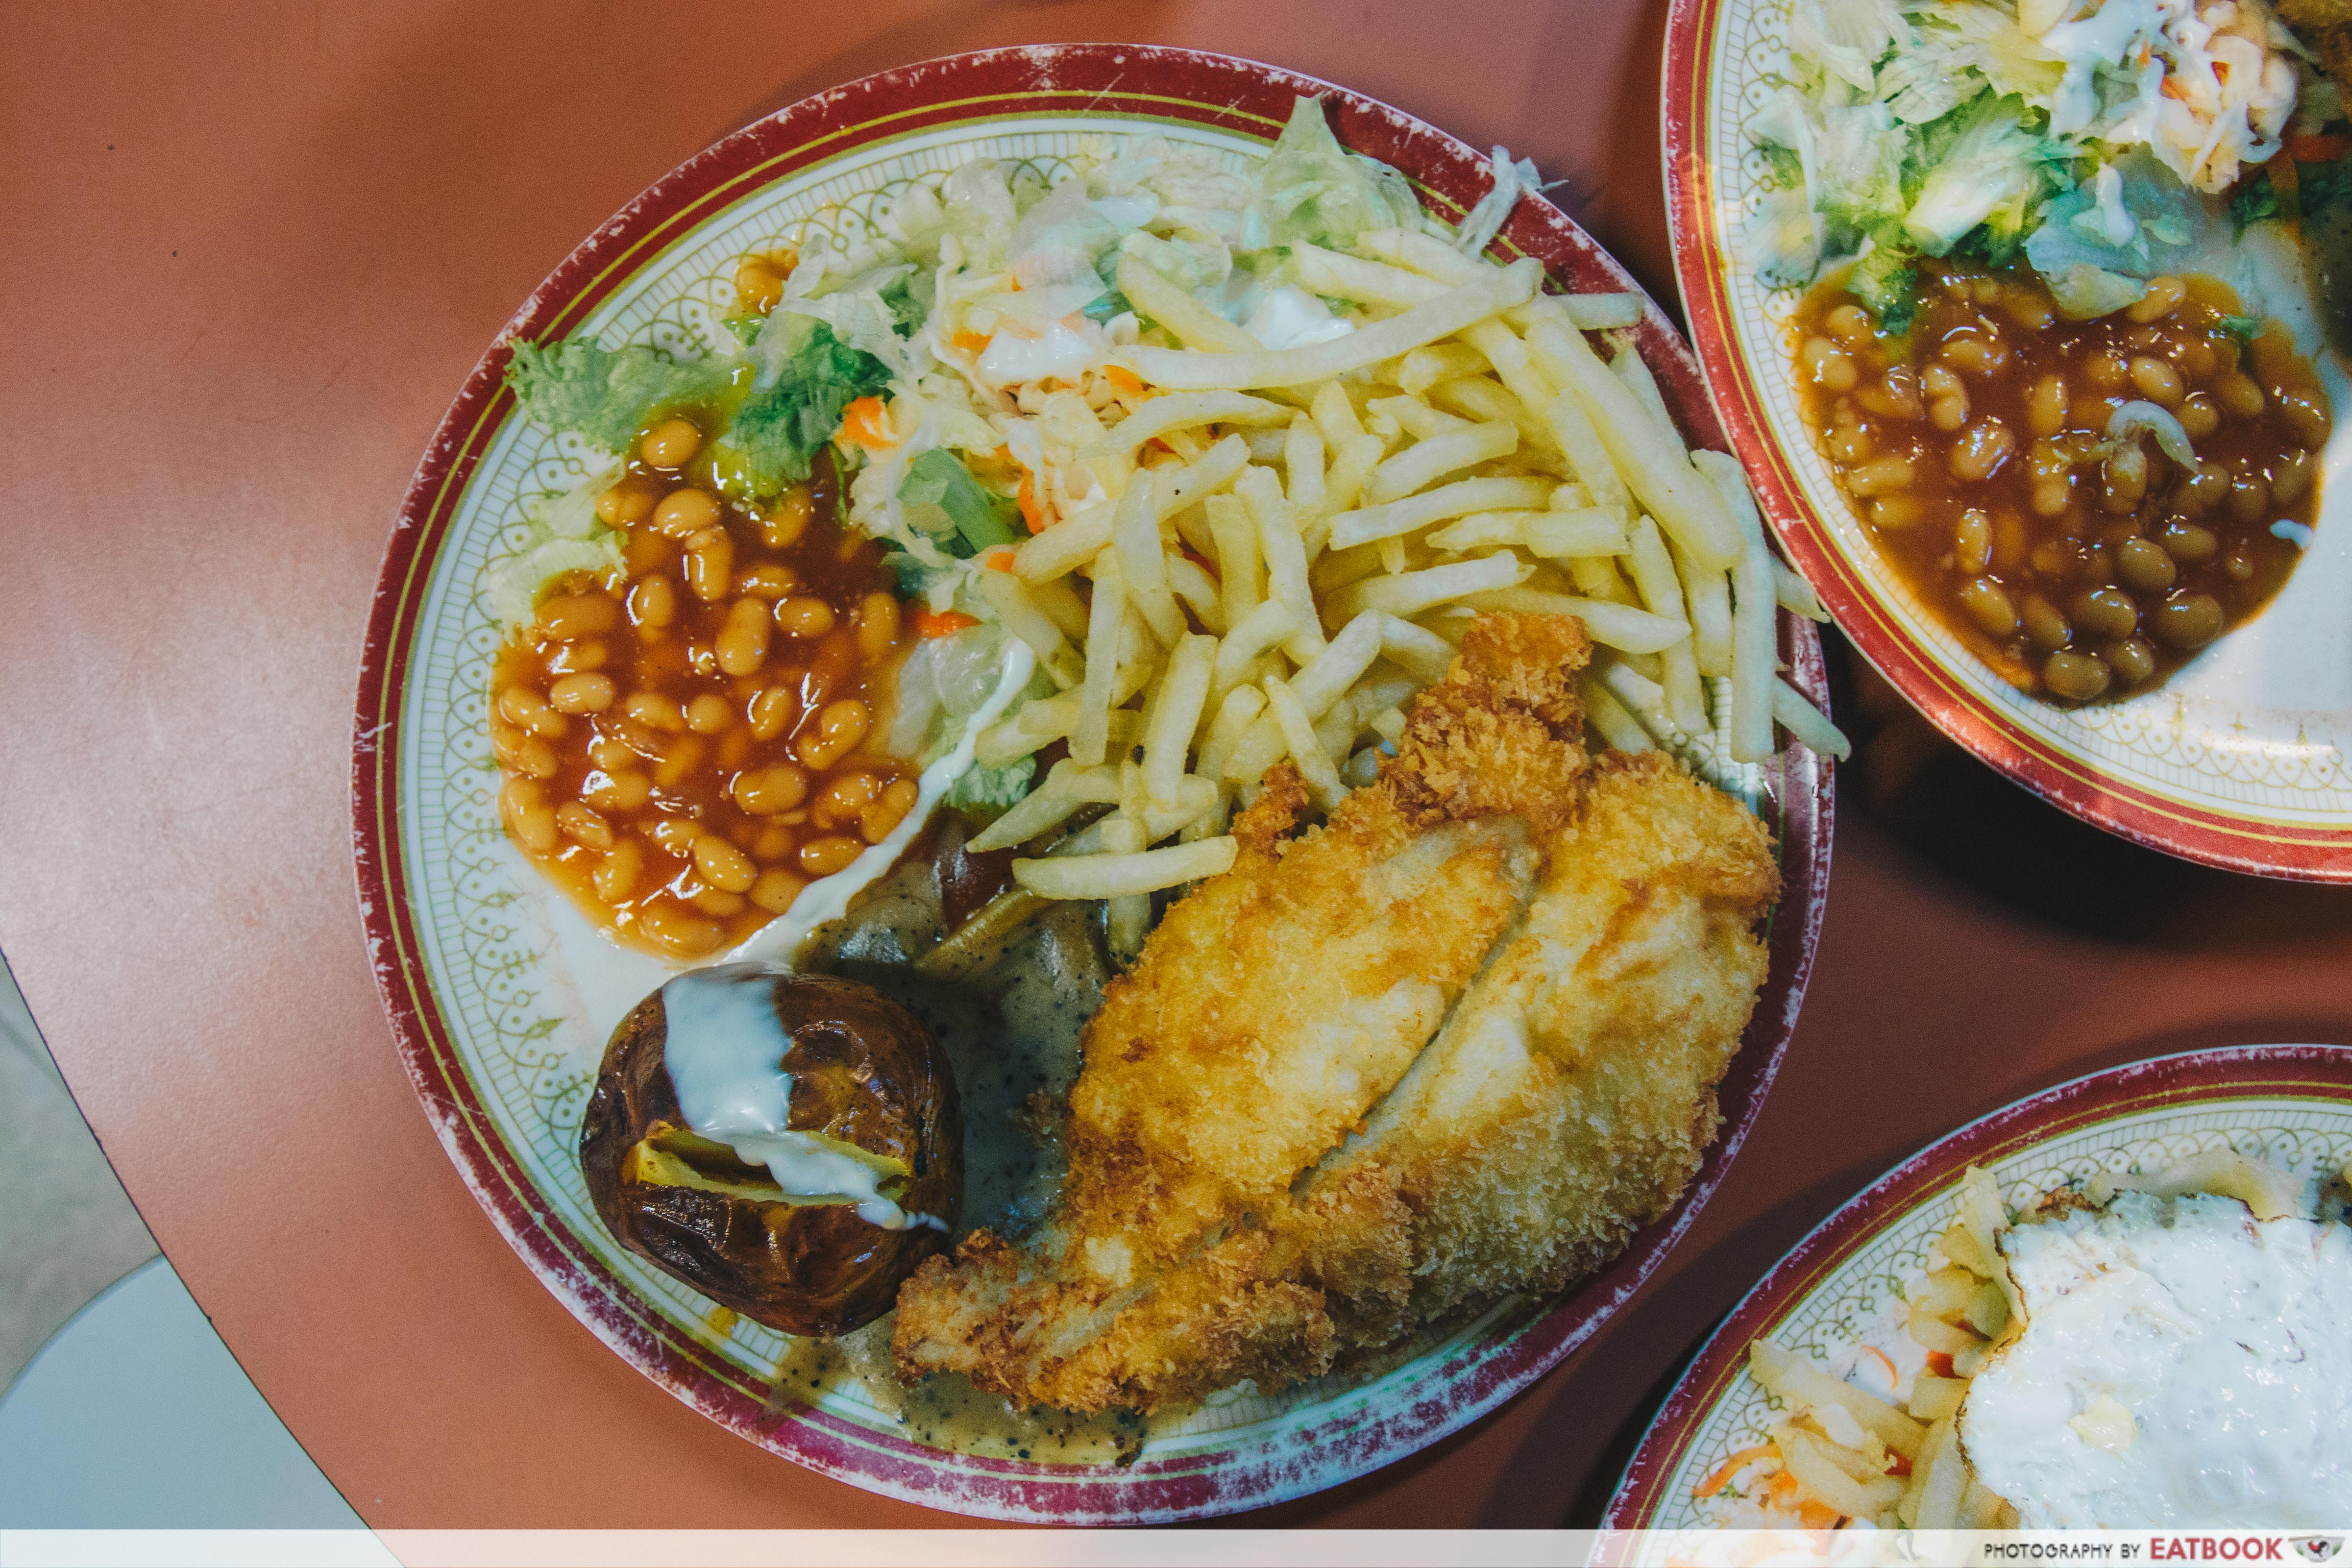 chef hainanese western food- fish and chips